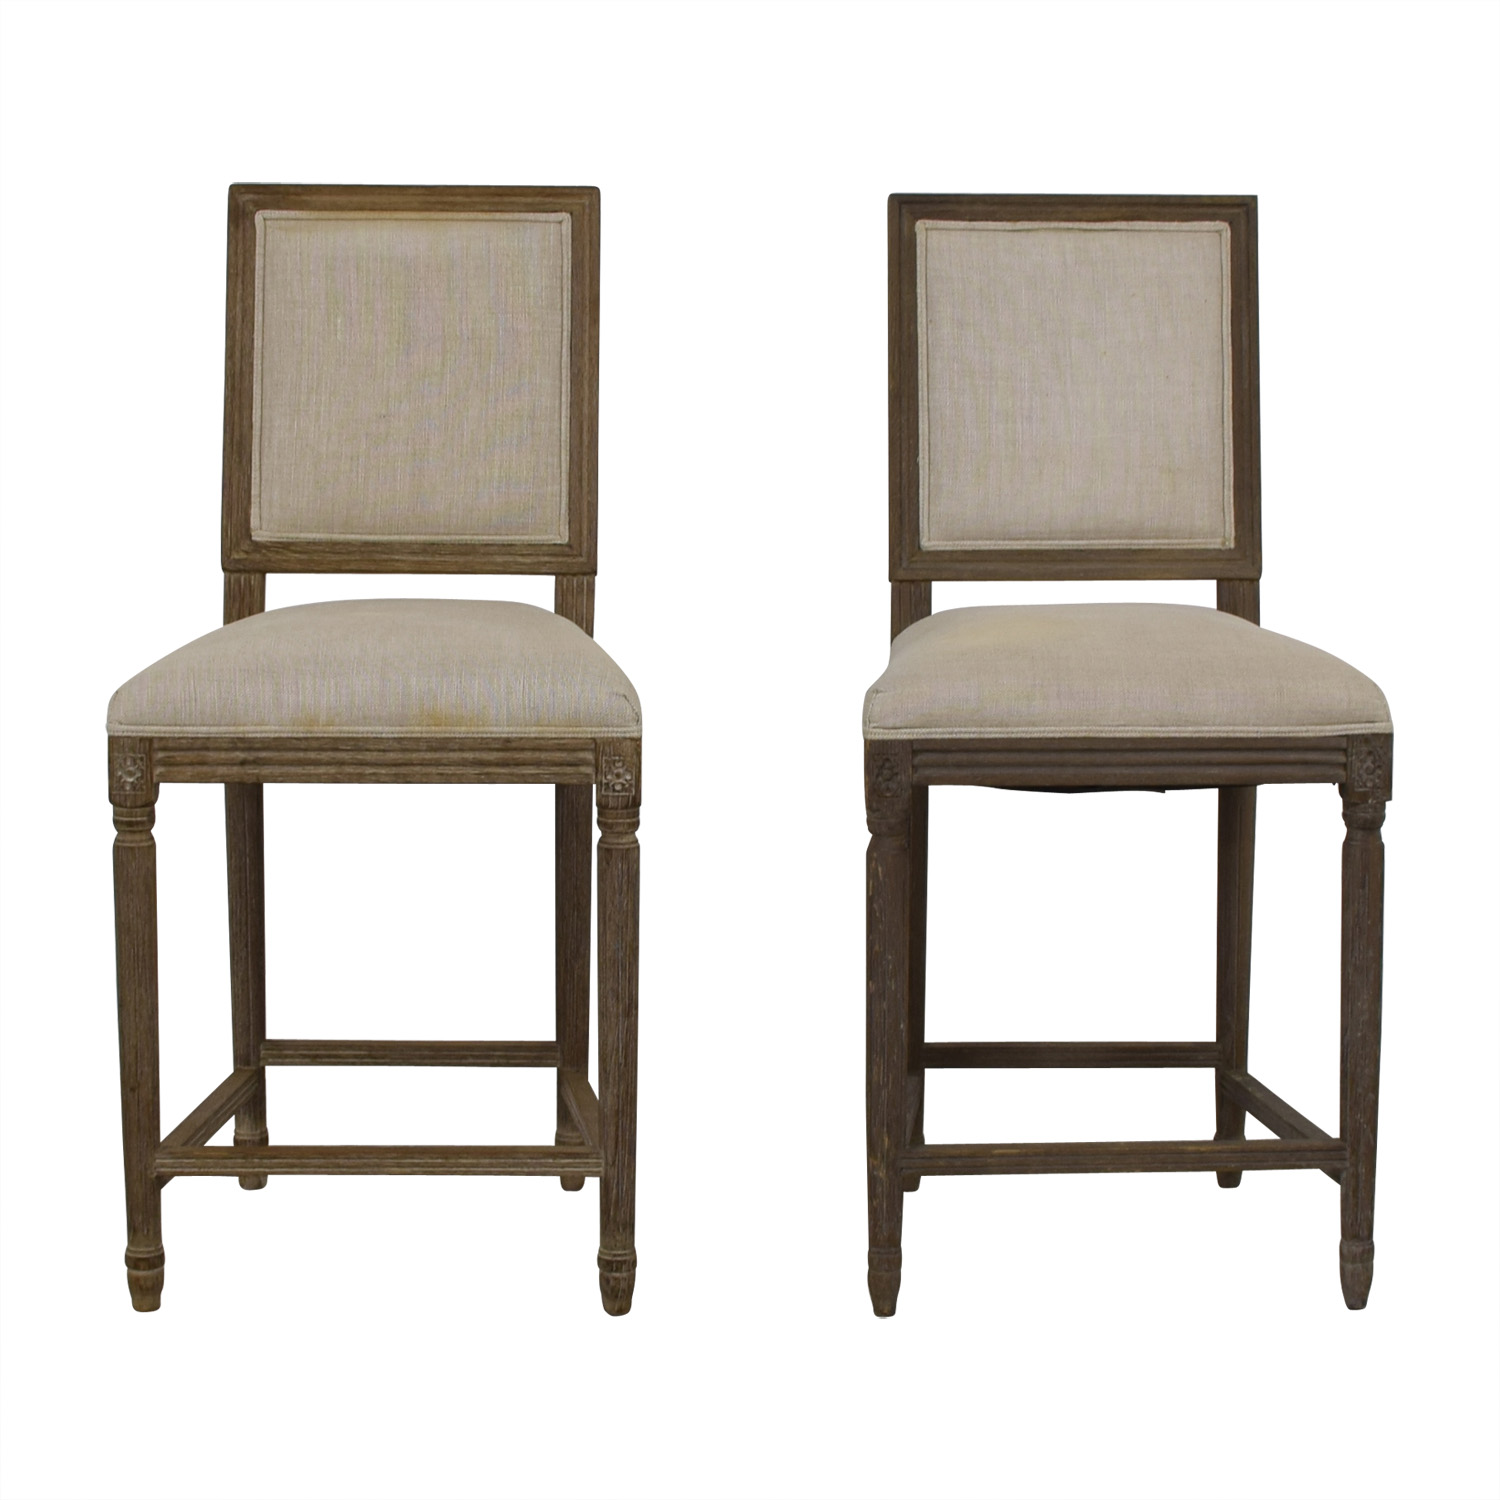 Restoration Hardware Dining Chairs 81 Off Restoration Hardware Restoration Hardware Vintage French